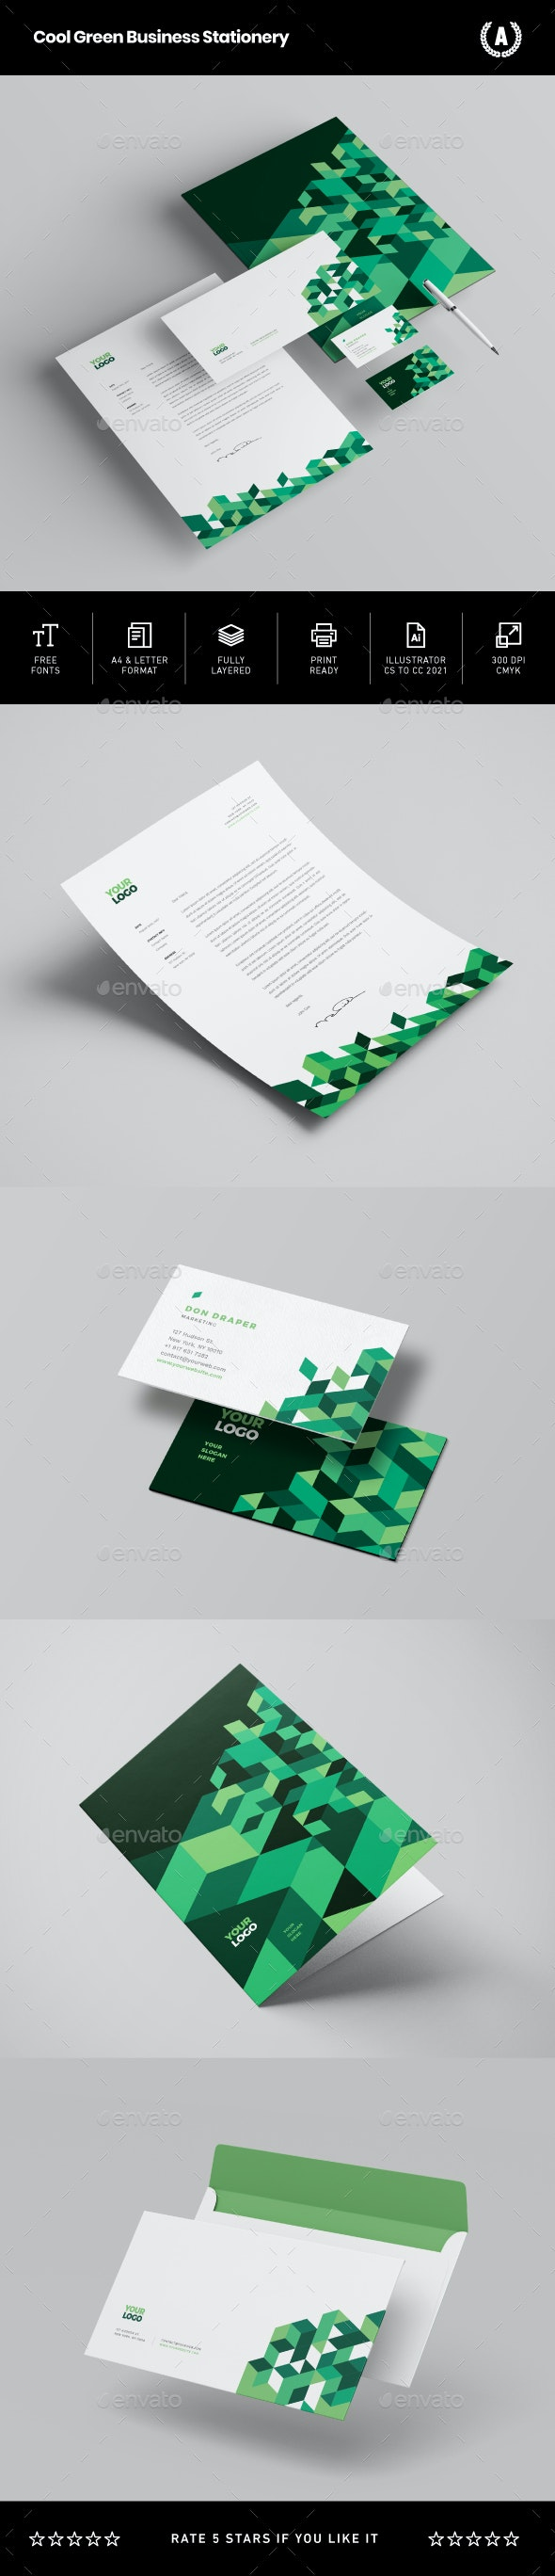 Cool Green Business Stationery - Stationery Print Templates